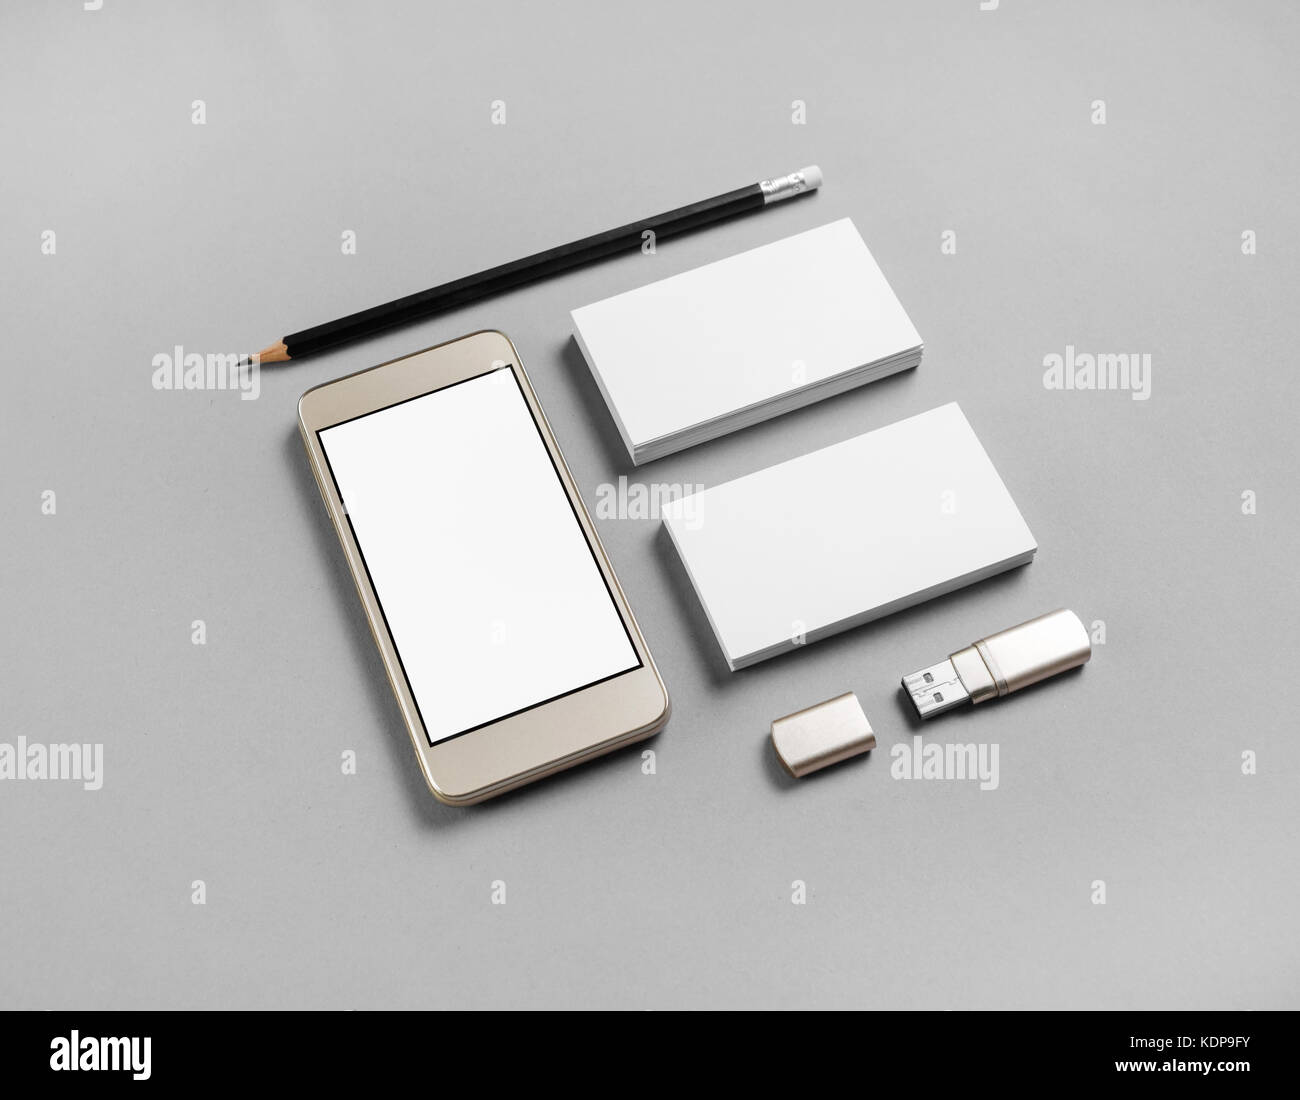 Cellphone and stationery on gray paper background. Blank business ...